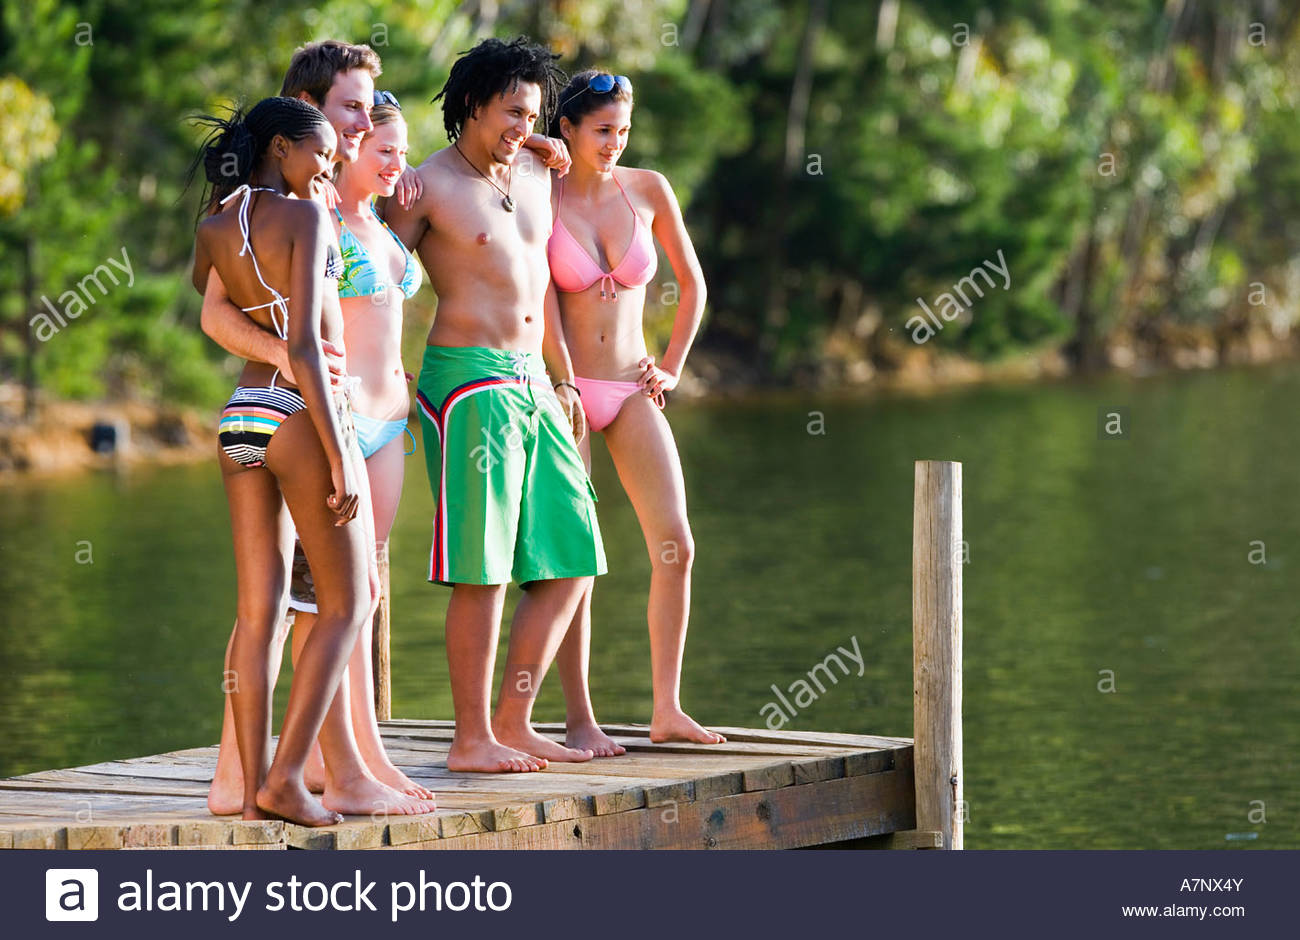 Five young adults in swimwear standing side by side on lake jetty smiling side view Stock Photo